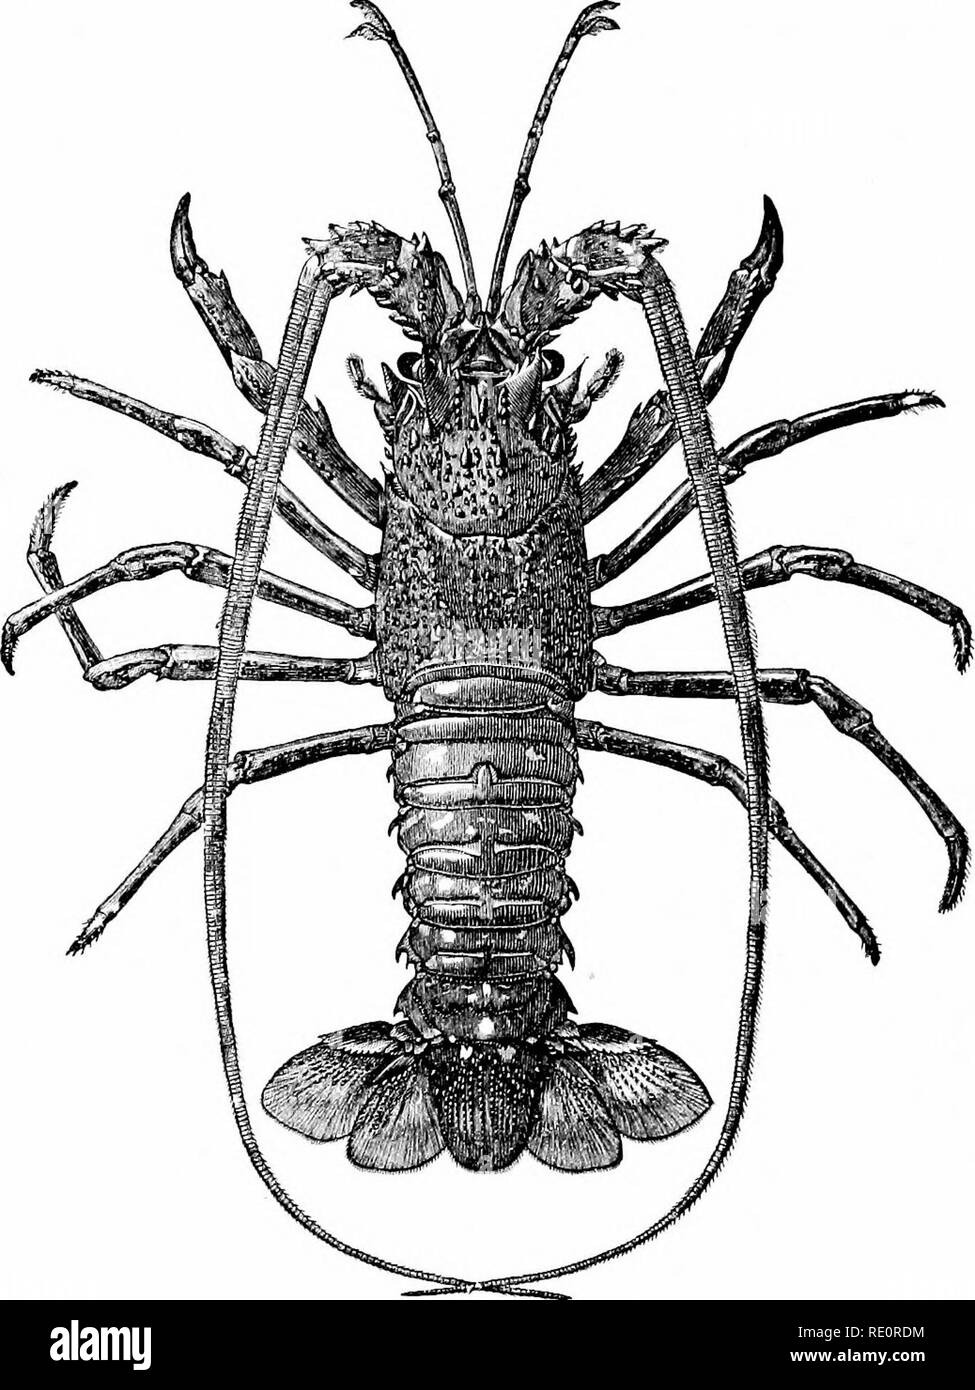 . An introduction to the study of zoology : by T. H. Huxley, F. R. S. ; with eighty-two illustrations. Crayfish; Zoology. Fig. 70. Palinvms viilgarU (about J nat. size).. Please note that these images are extracted from scanned page images that may have been digitally enhanced for readability - coloration and appearance of these illustrations may not perfectly resemble the original work.. Huxley, Thomas Henry, 1825-1895; Huxley, Thomas Henry, 1825-1895. Crayfish. New York : D. Appleton Stock Photo